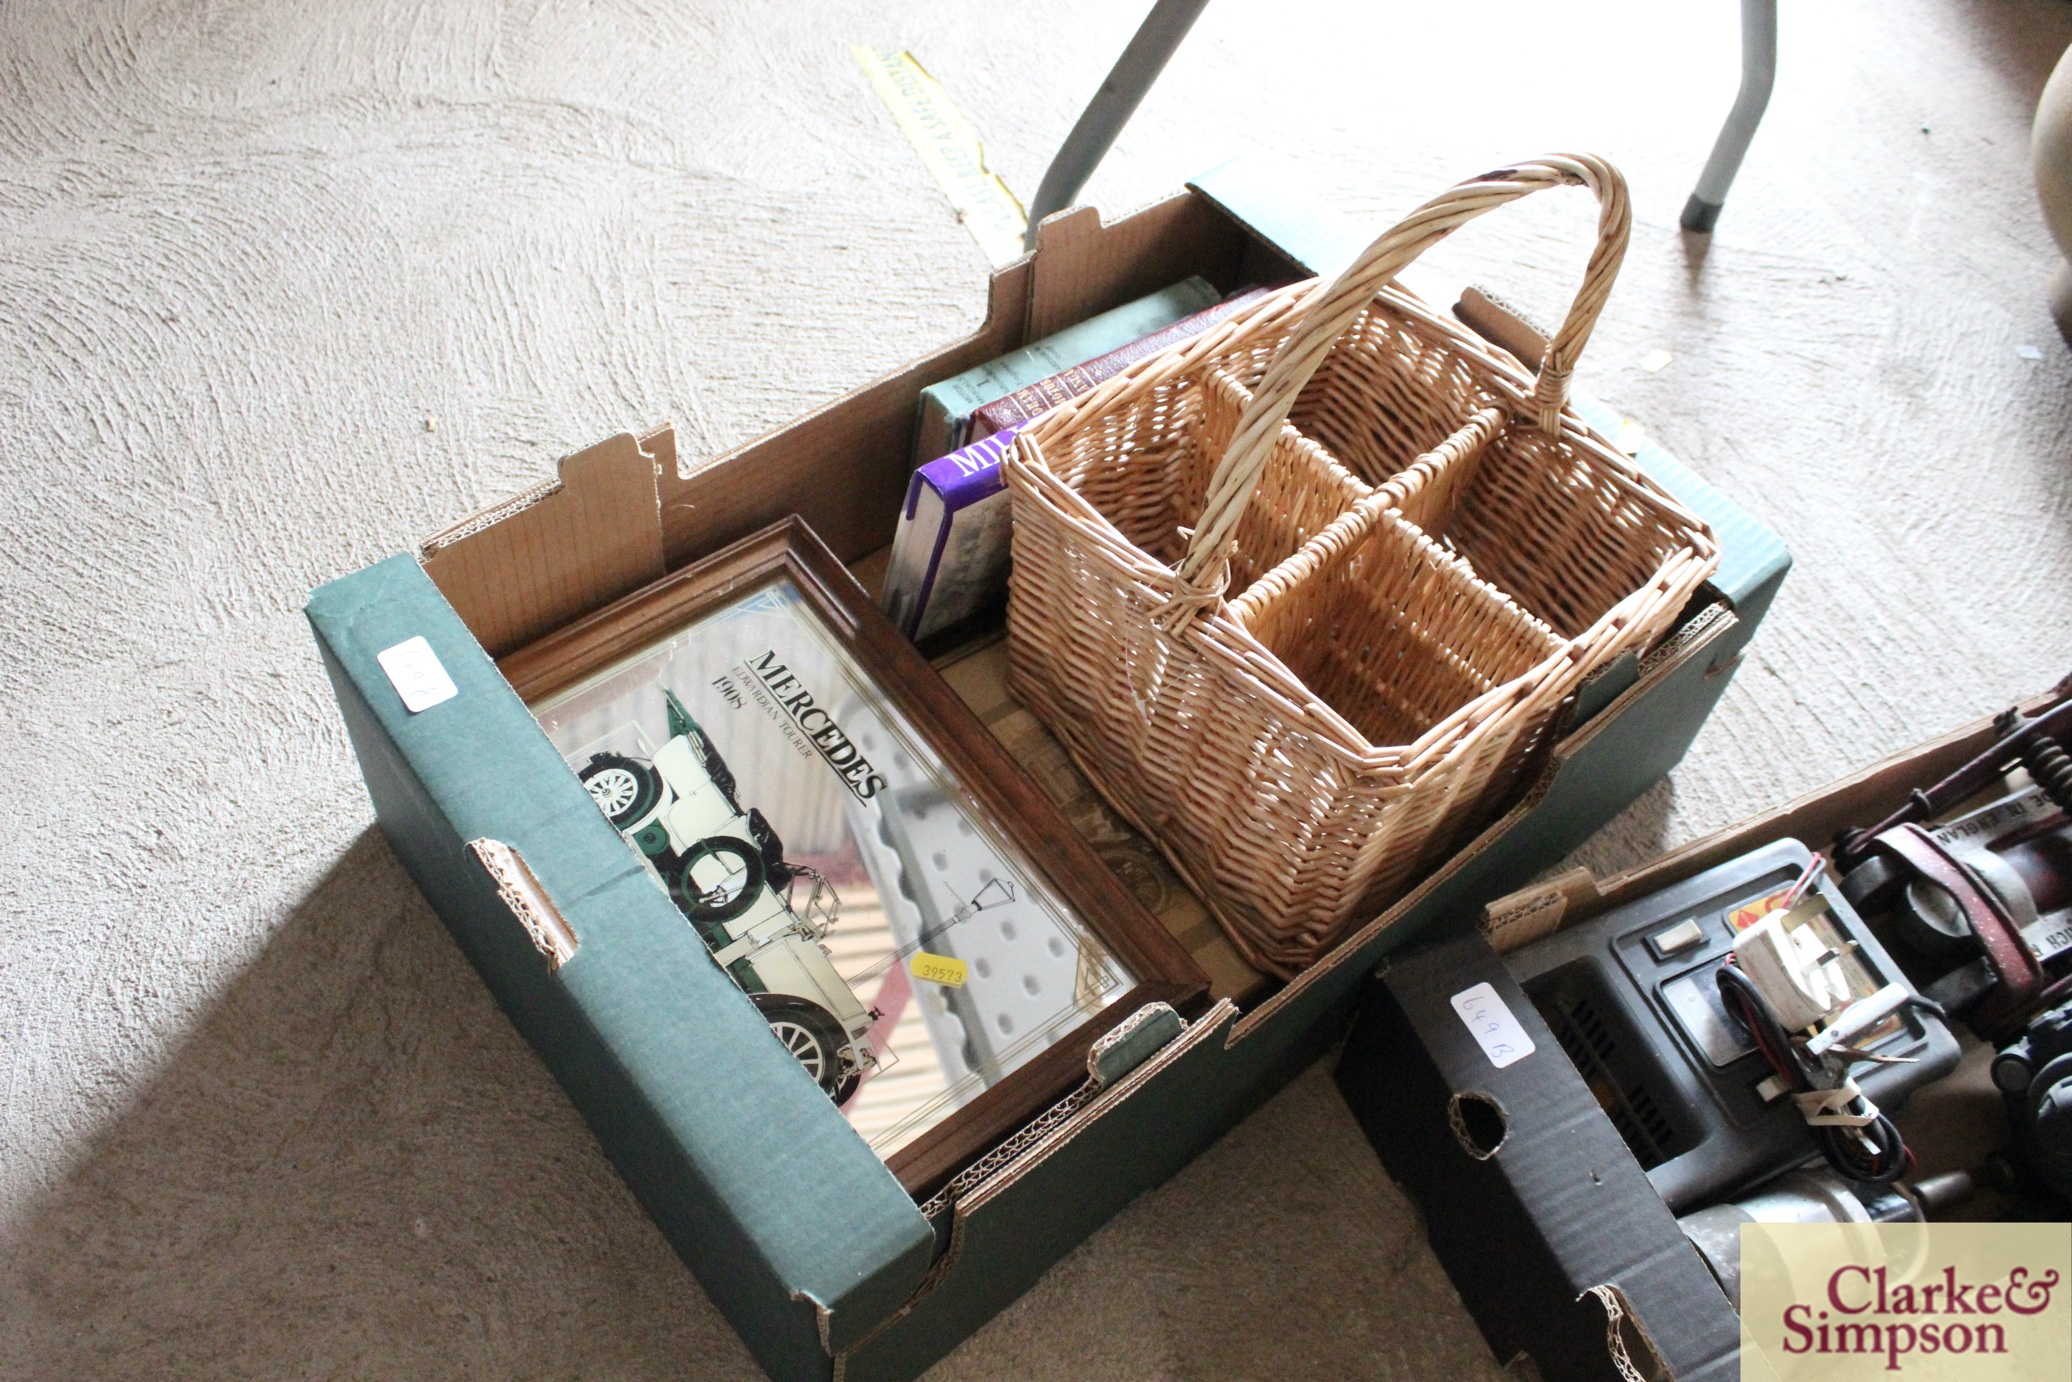 A box containing a wicker bottle carrier, three ca